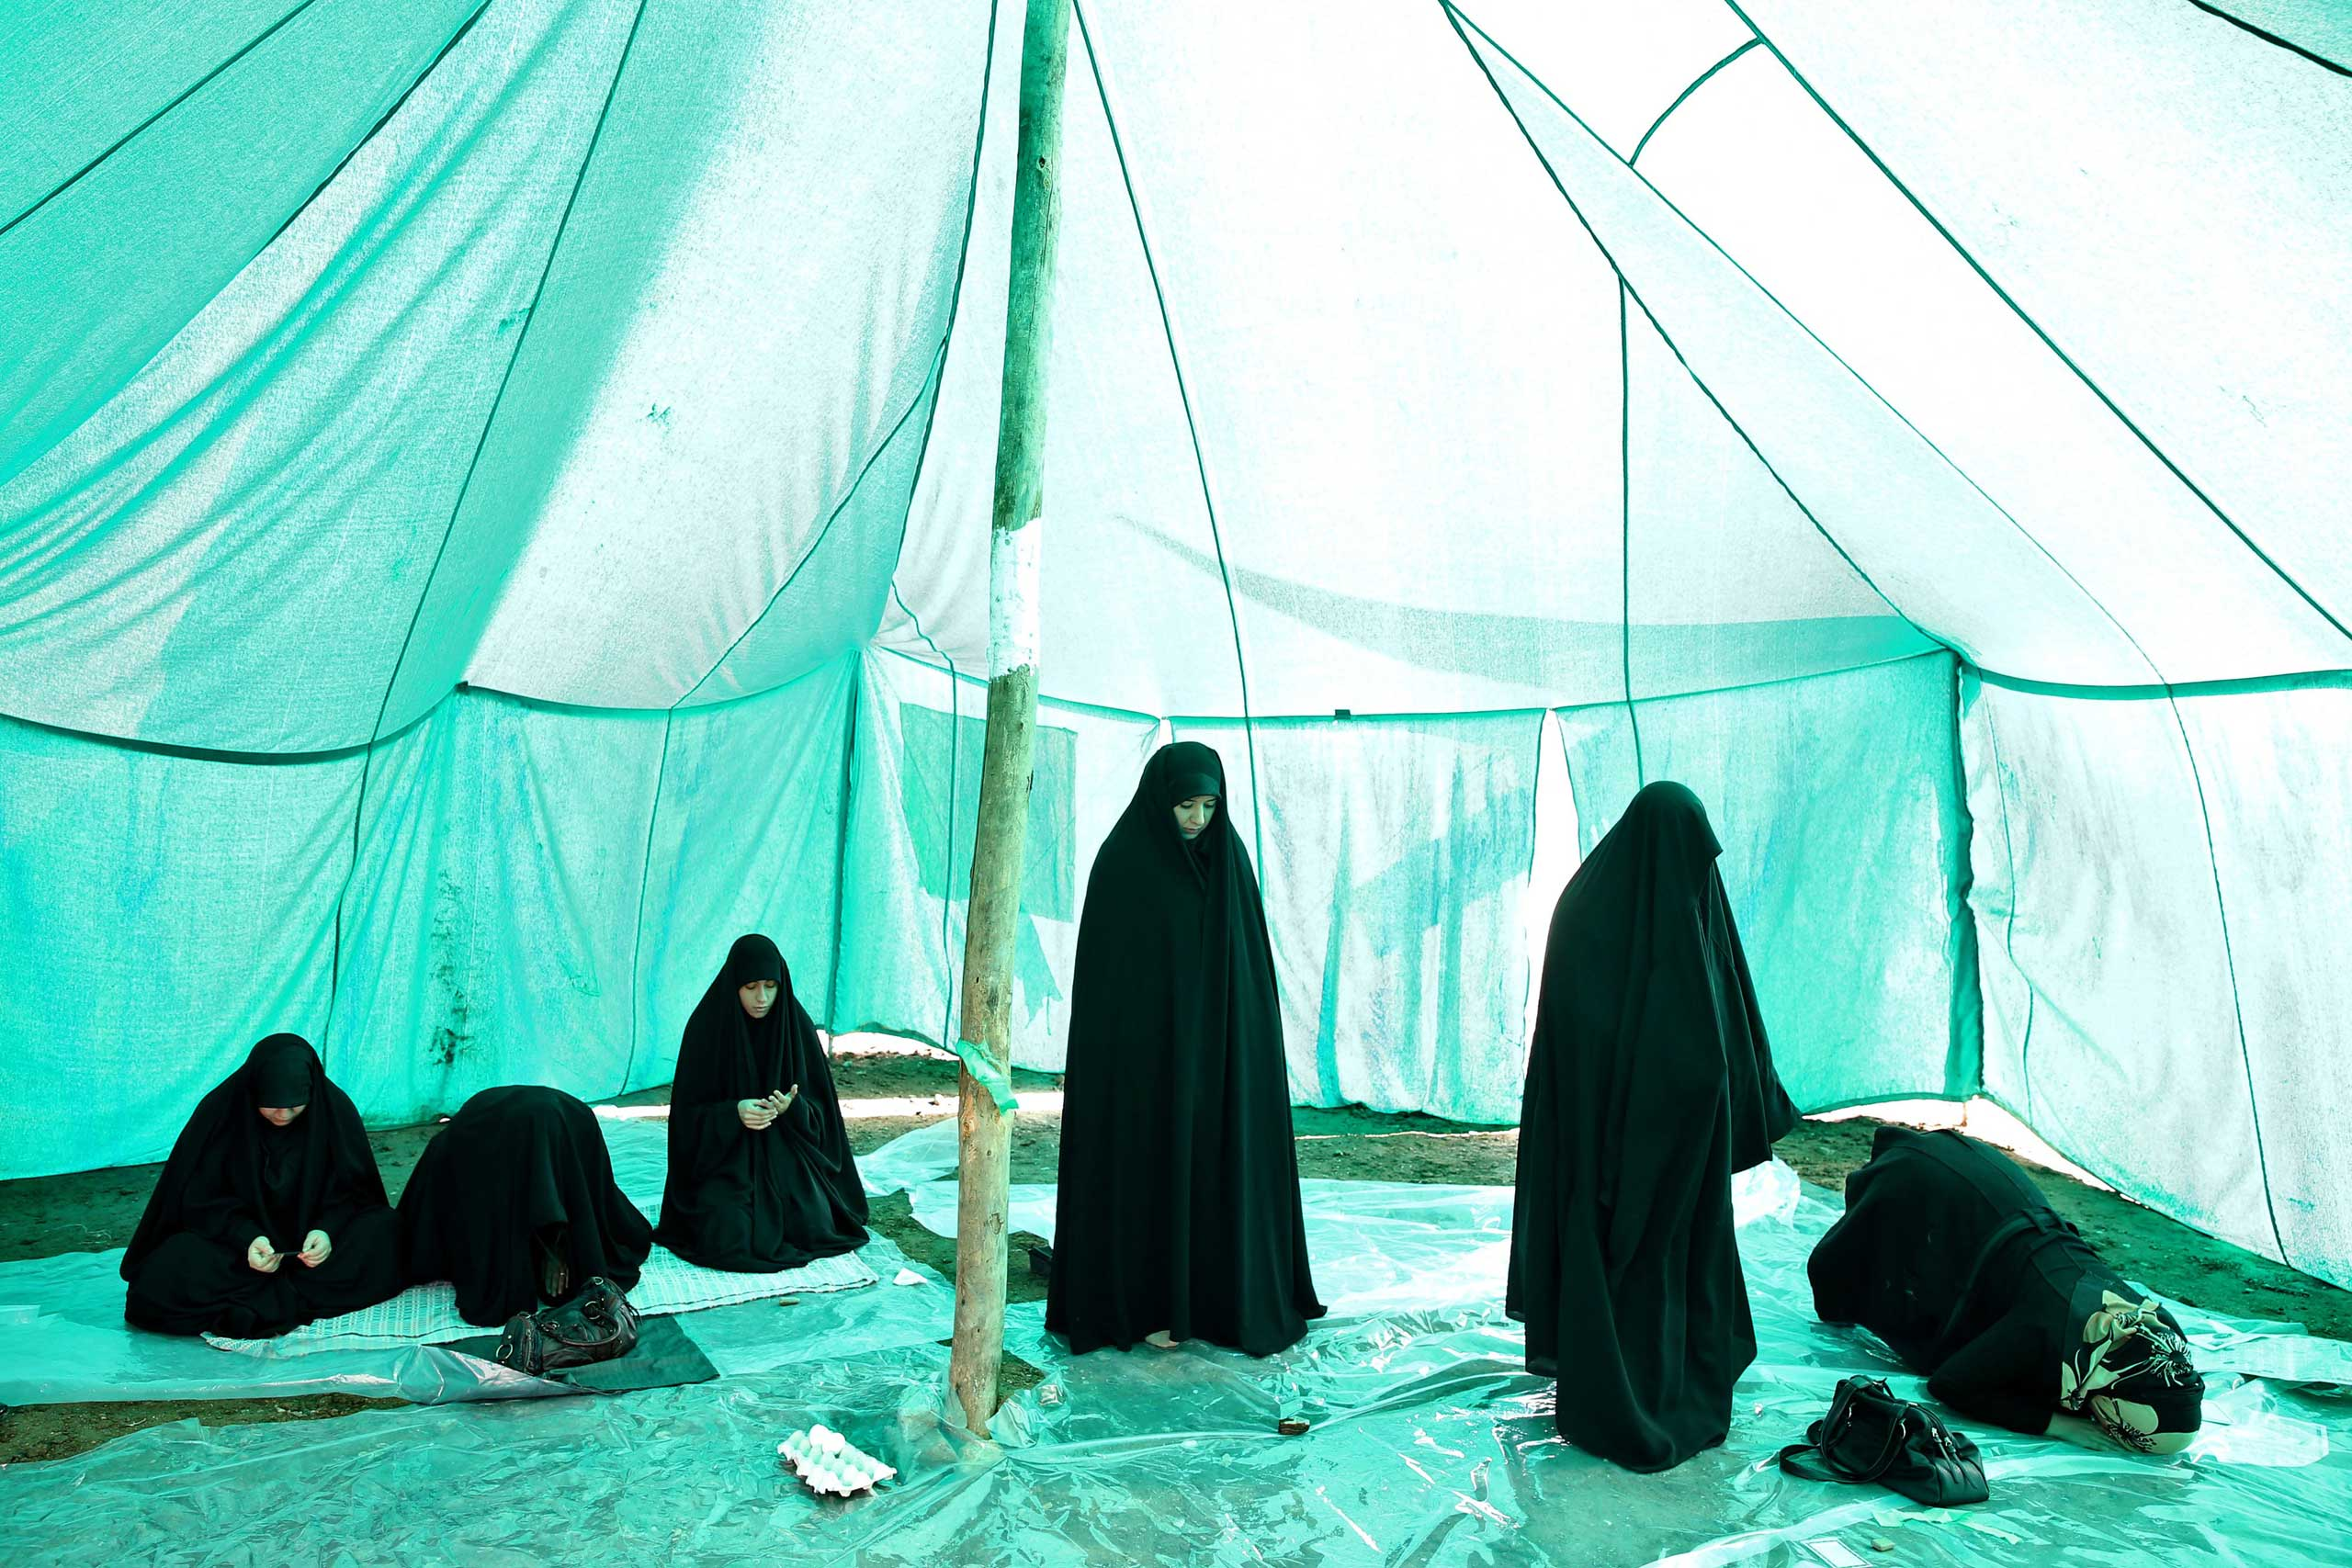 Nov. 4, 2014. Shiite mourners pray while attending Ashoura day rituals commemorating the death anniversary of Imam Hussein in south of Tehran.